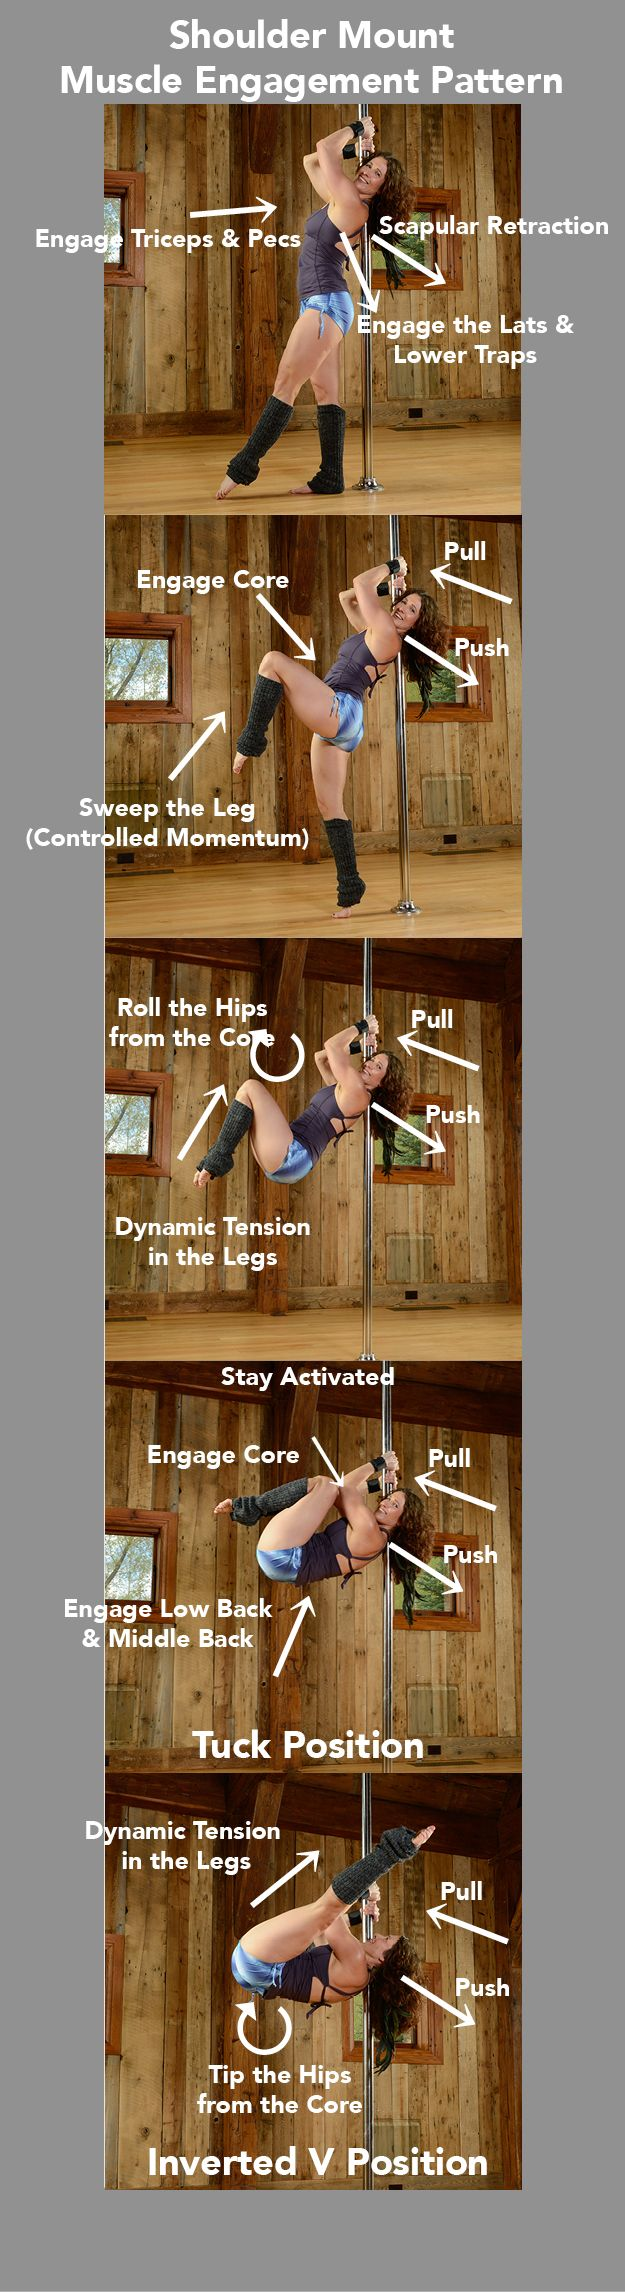 Read the article on How to Get Your Shoulder Mount at http://www.totallystokedfitness.com/#!How-to-Get-the-Shoulder-Mount-Part-2/clfr/5515ca430cf215f35a208ed1